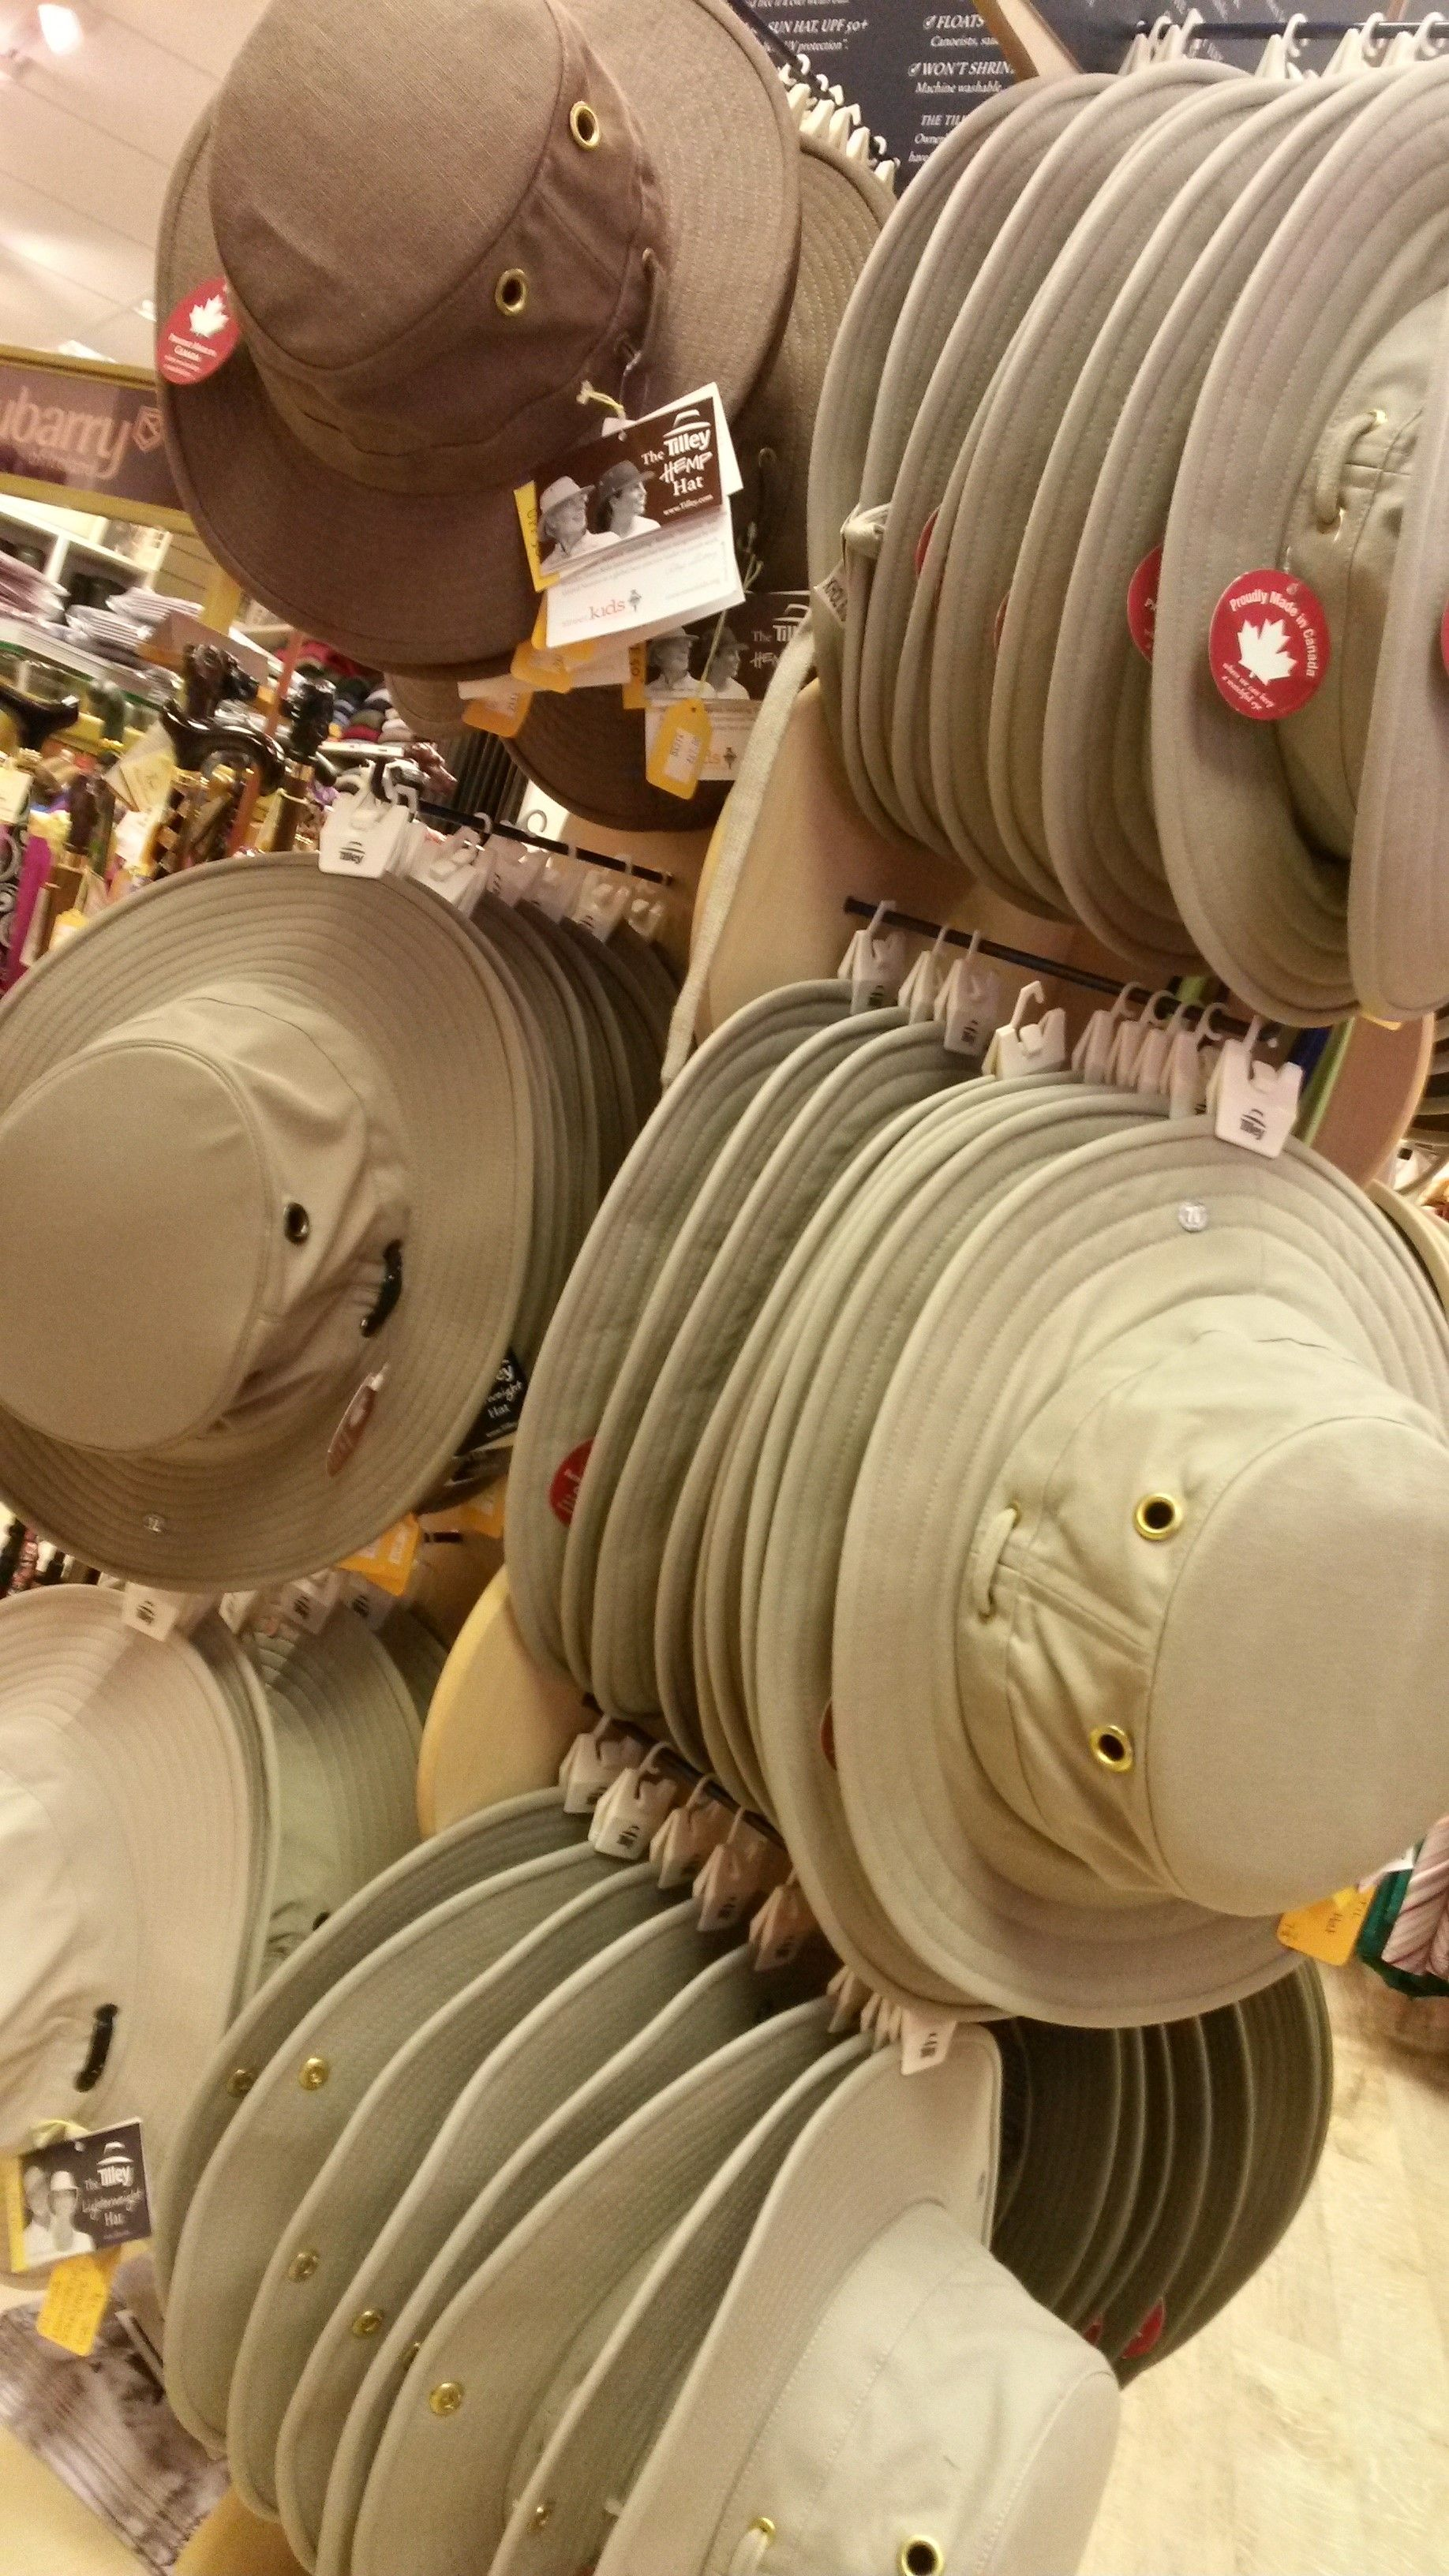 Is your Dad a bit of an Indiana Jones? Does he enjoy globetrotting? Or does he just prefer pottering in the garden? Tilley hats are a design classic for all sorts of outdoor adventures, and we've got a great range - from breathable hats for hot weather to ones that even repel insects! Available online or in-store from Luck of Louth.